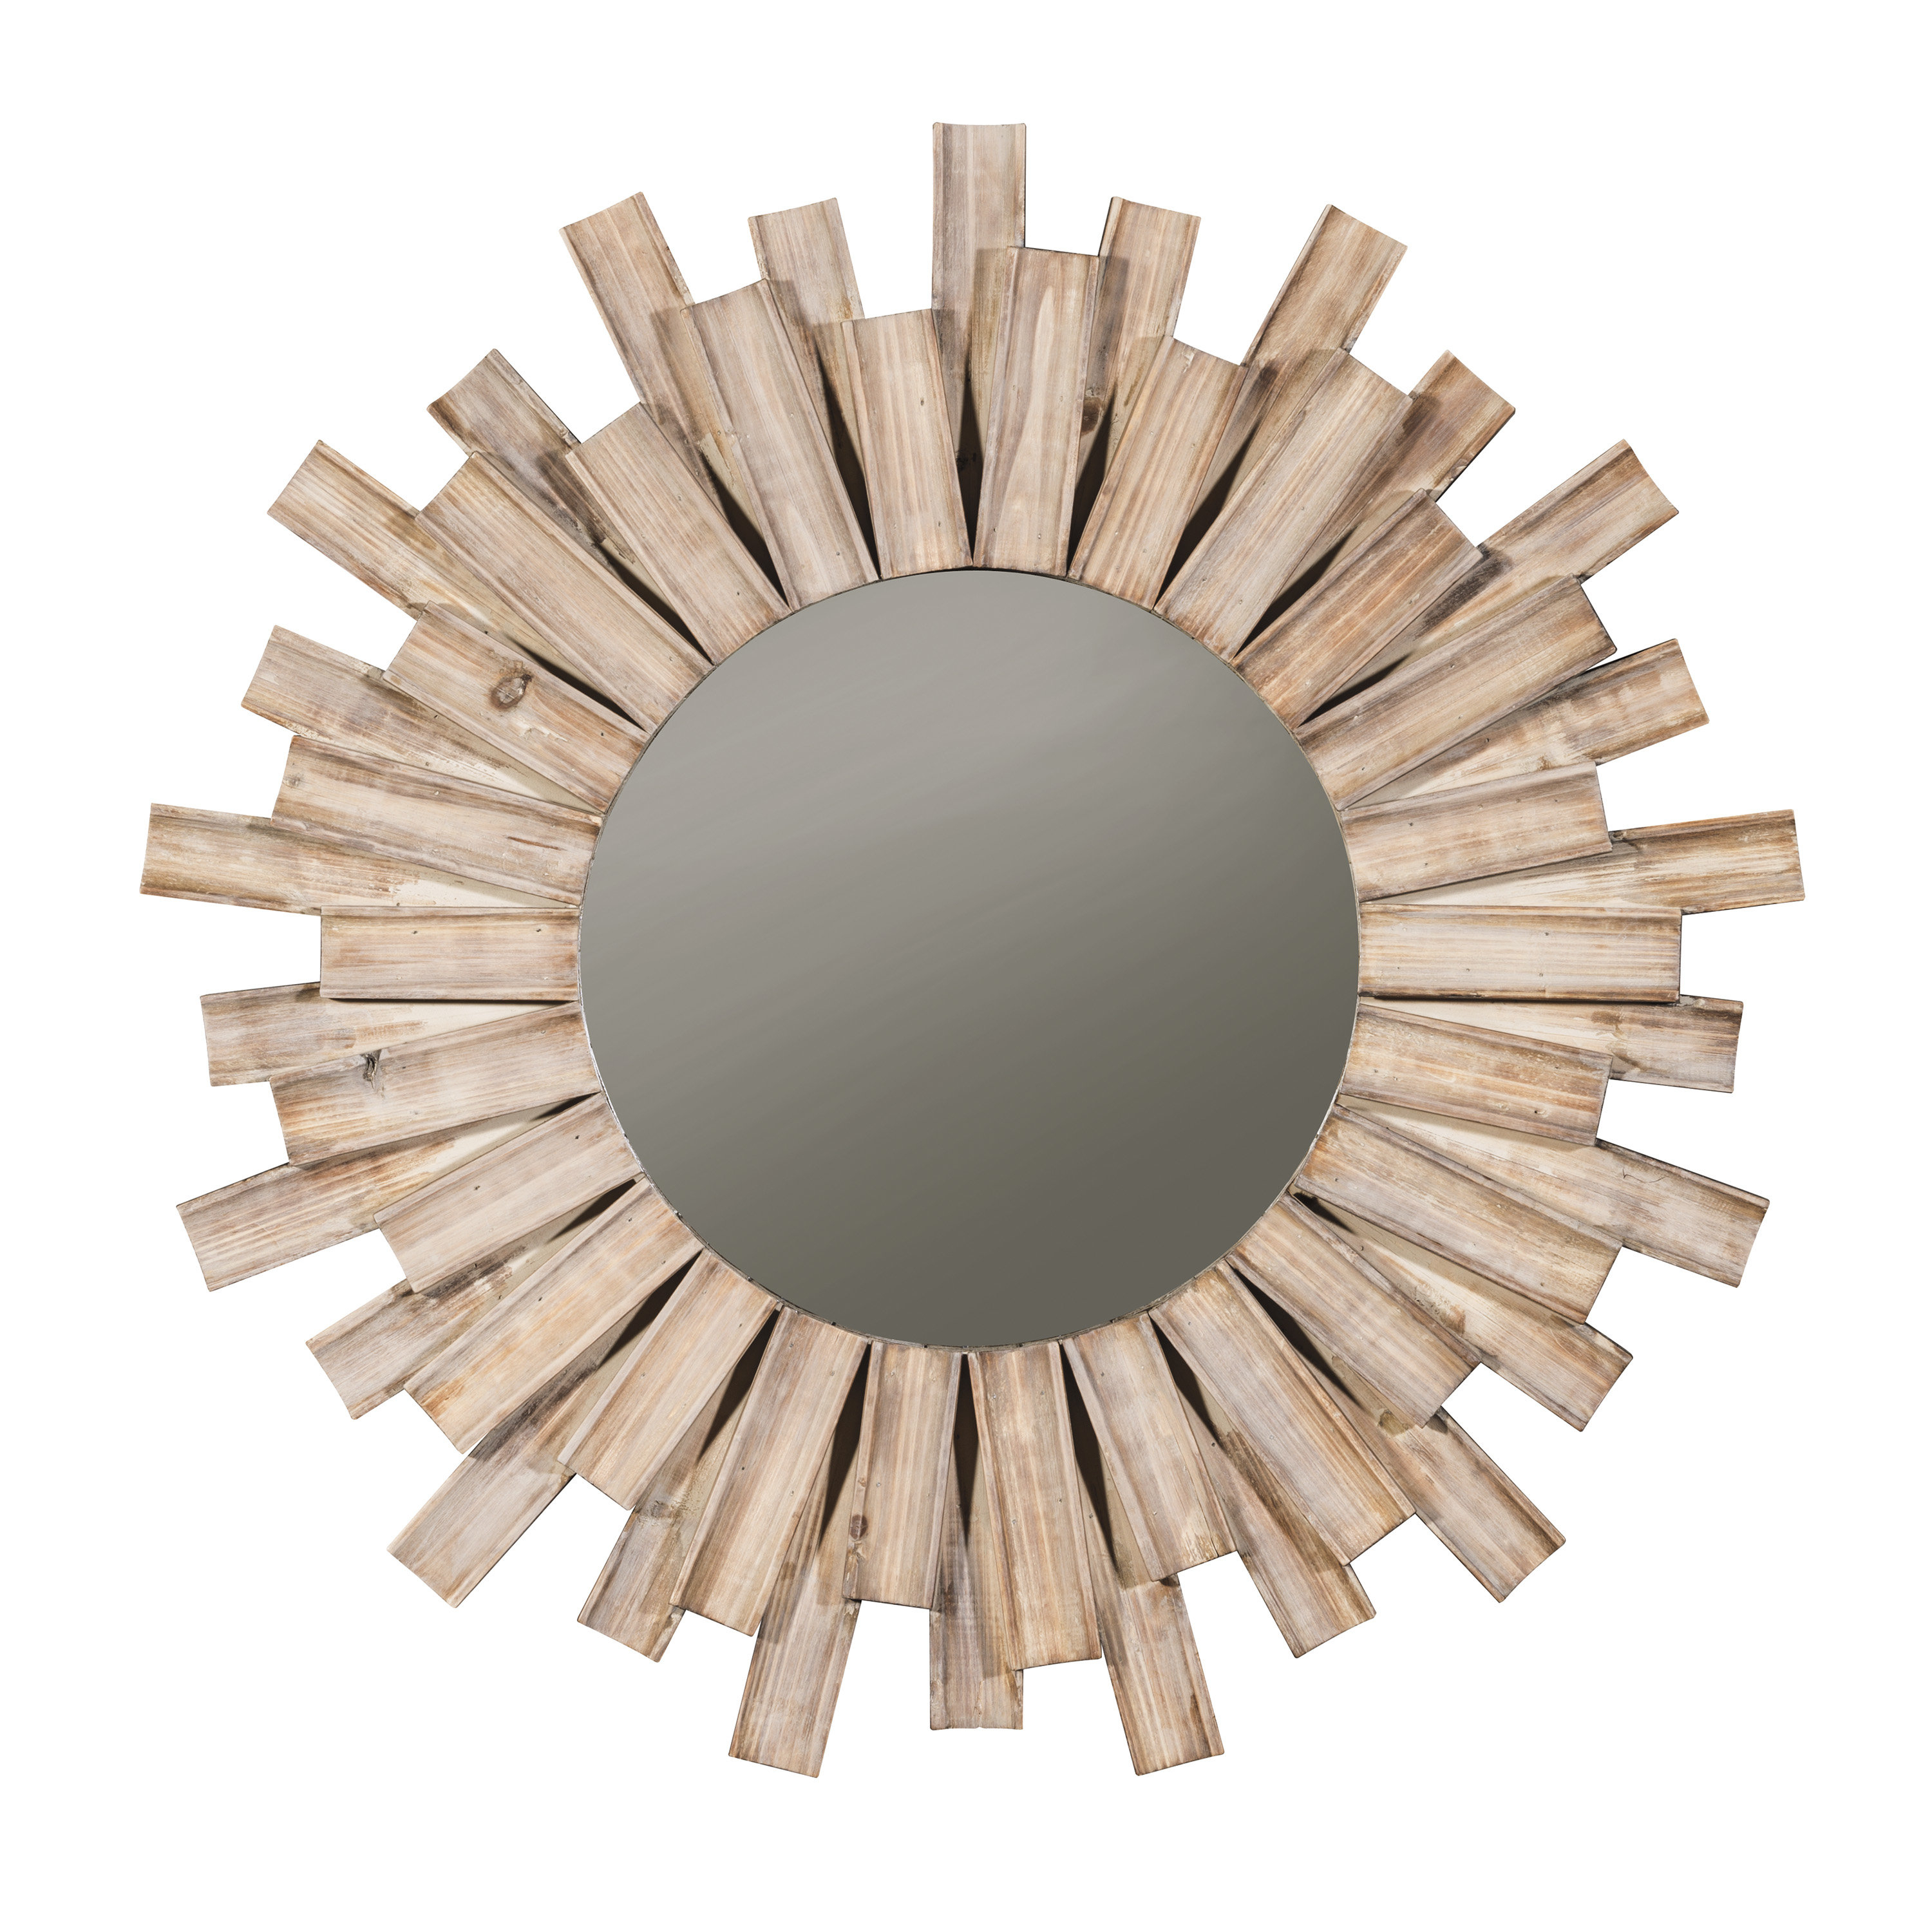 Perillo Burst Wood Accent Mirror & Reviews | Joss & Main Pertaining To Laurel Foundry Modern & Contemporary Accent Mirrors (View 13 of 20)